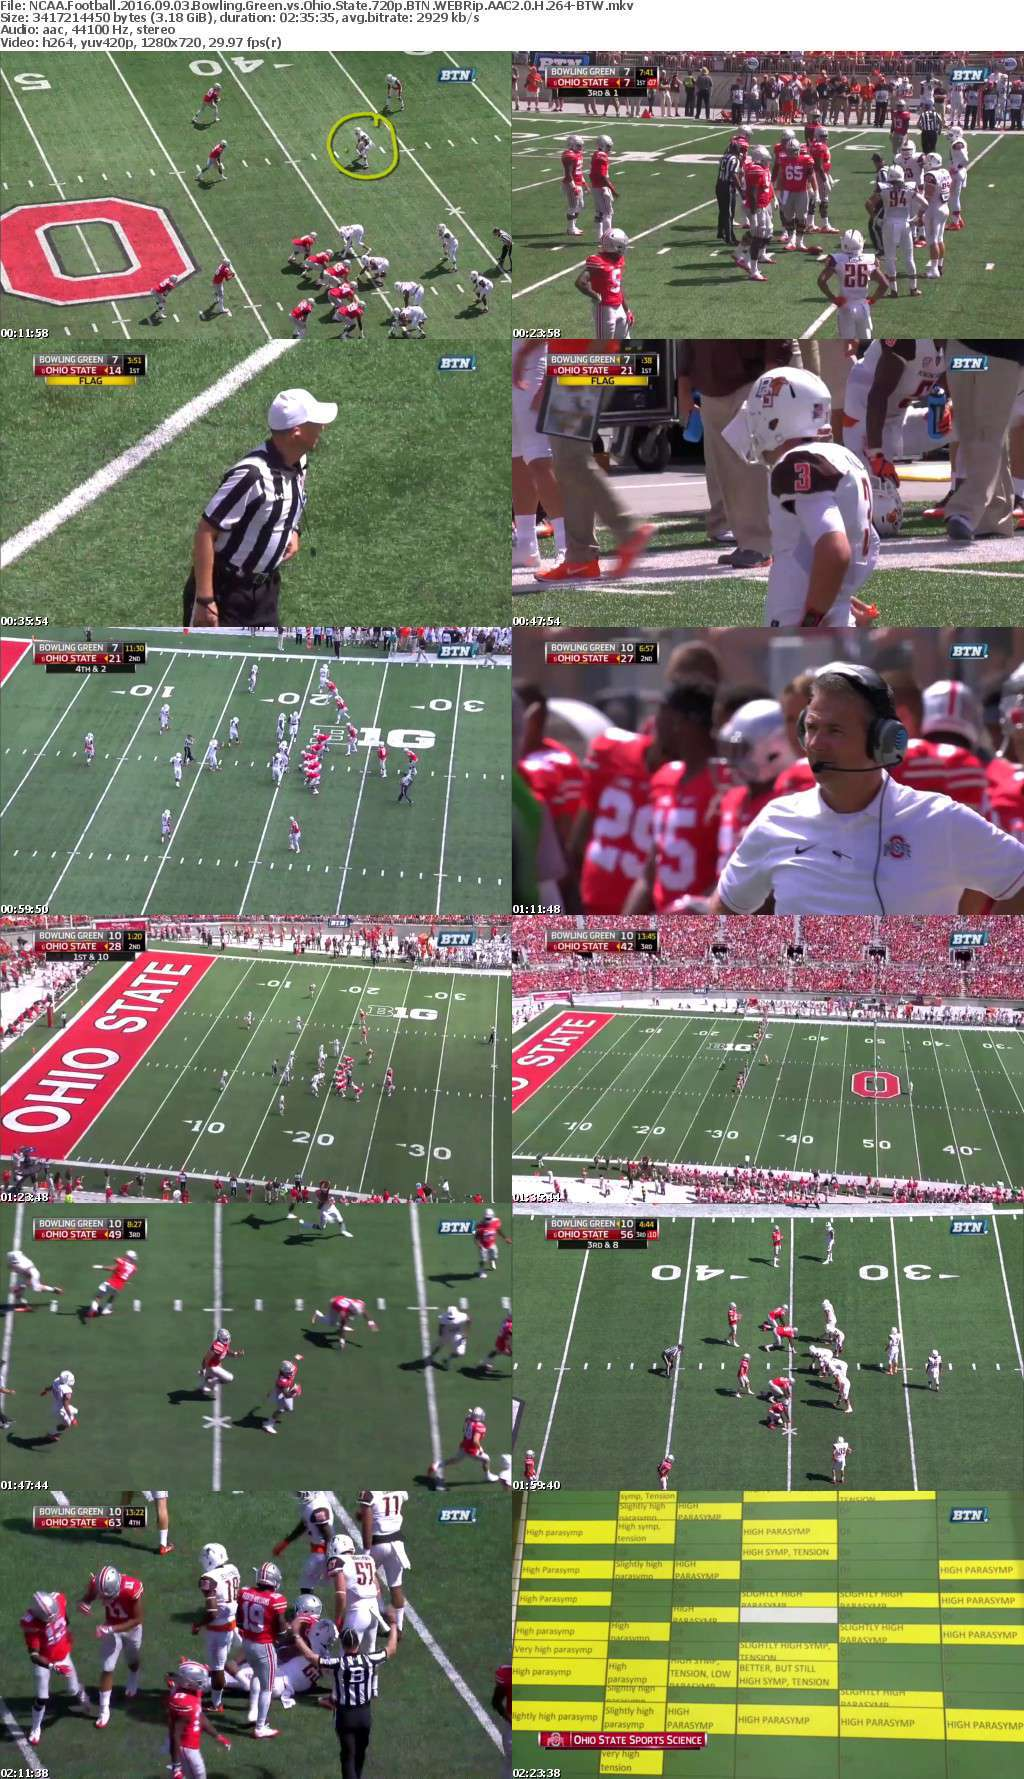 NCAA Football 2016 09 03 Bowling Green vs Ohio State 720p BTN WEBRip AAC2 0 H 264-BTW